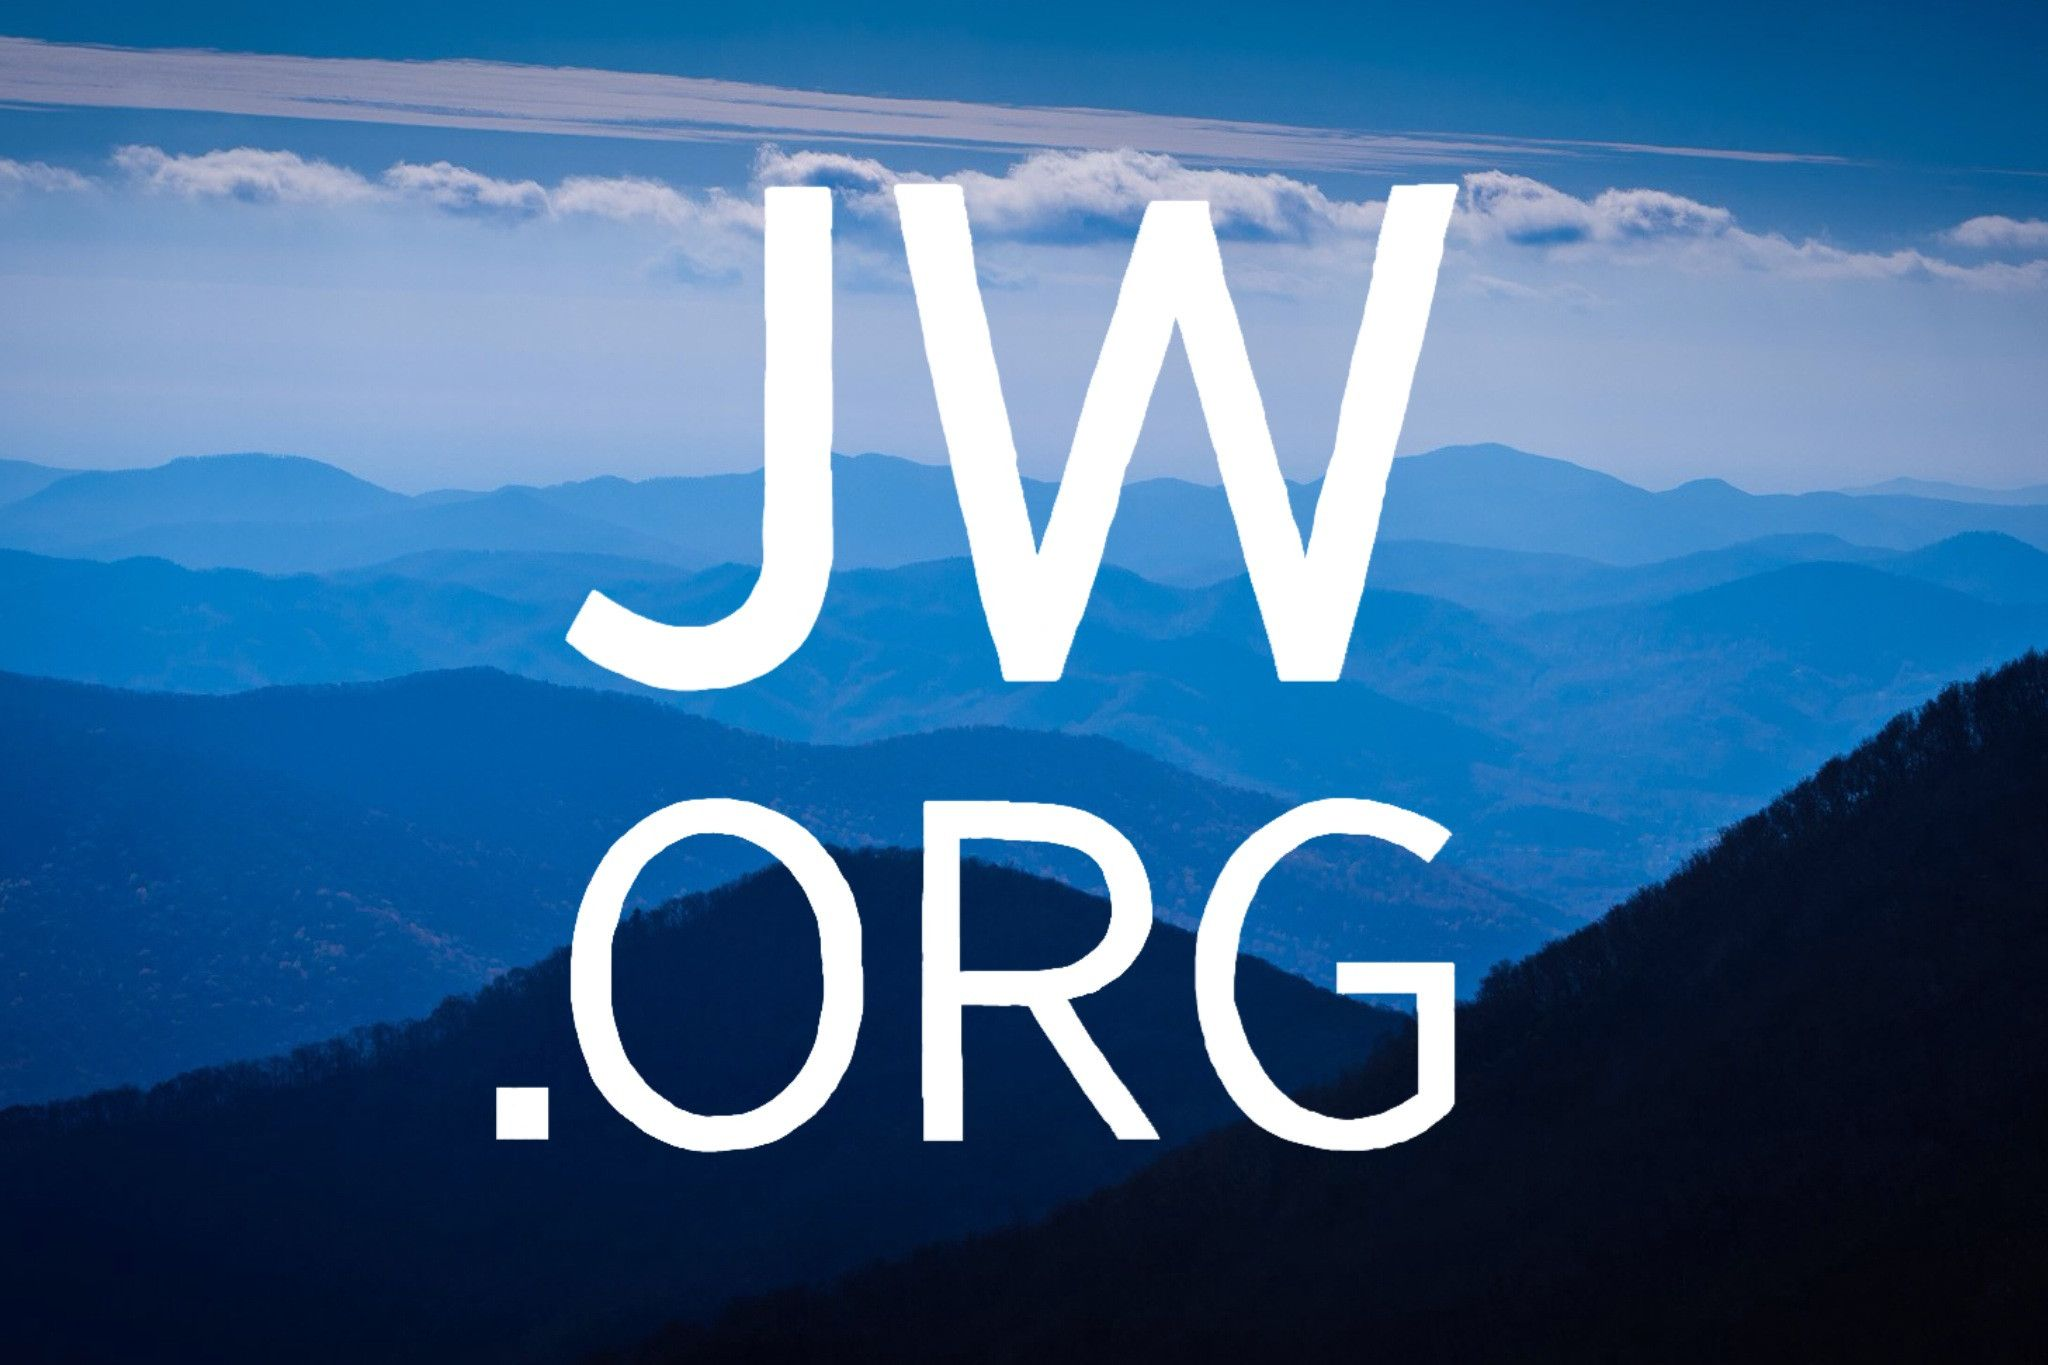 Jw Org Wallpapers Top Free Jw Org Backgrounds Wallpaperaccess It includes multiple bible translations, as well as books and brochures for bible study. jw org wallpapers top free jw org